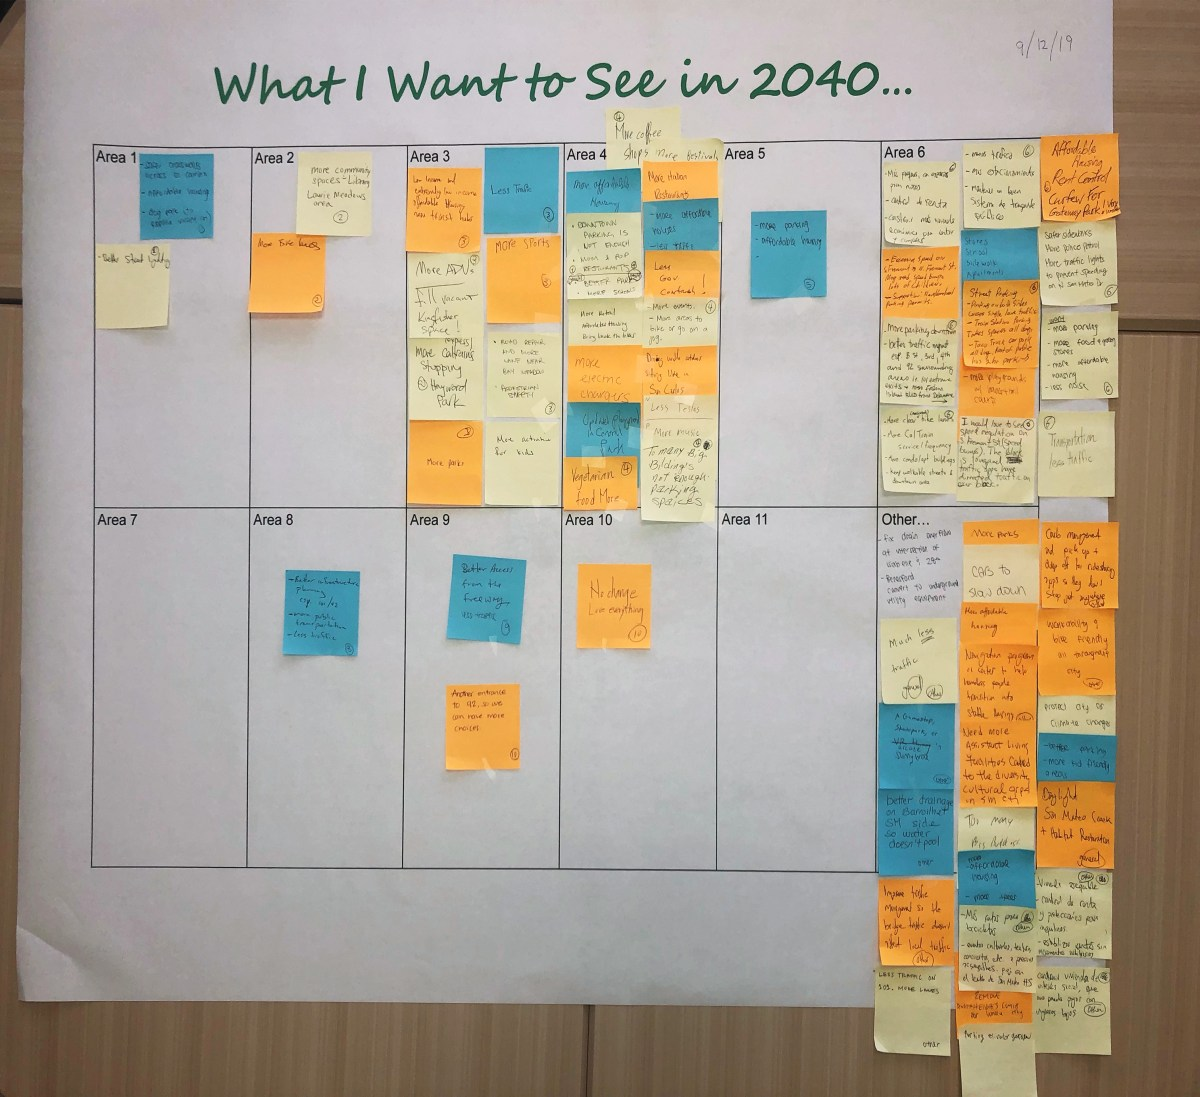 What I want to see in 2040 exercise index cards, September 12